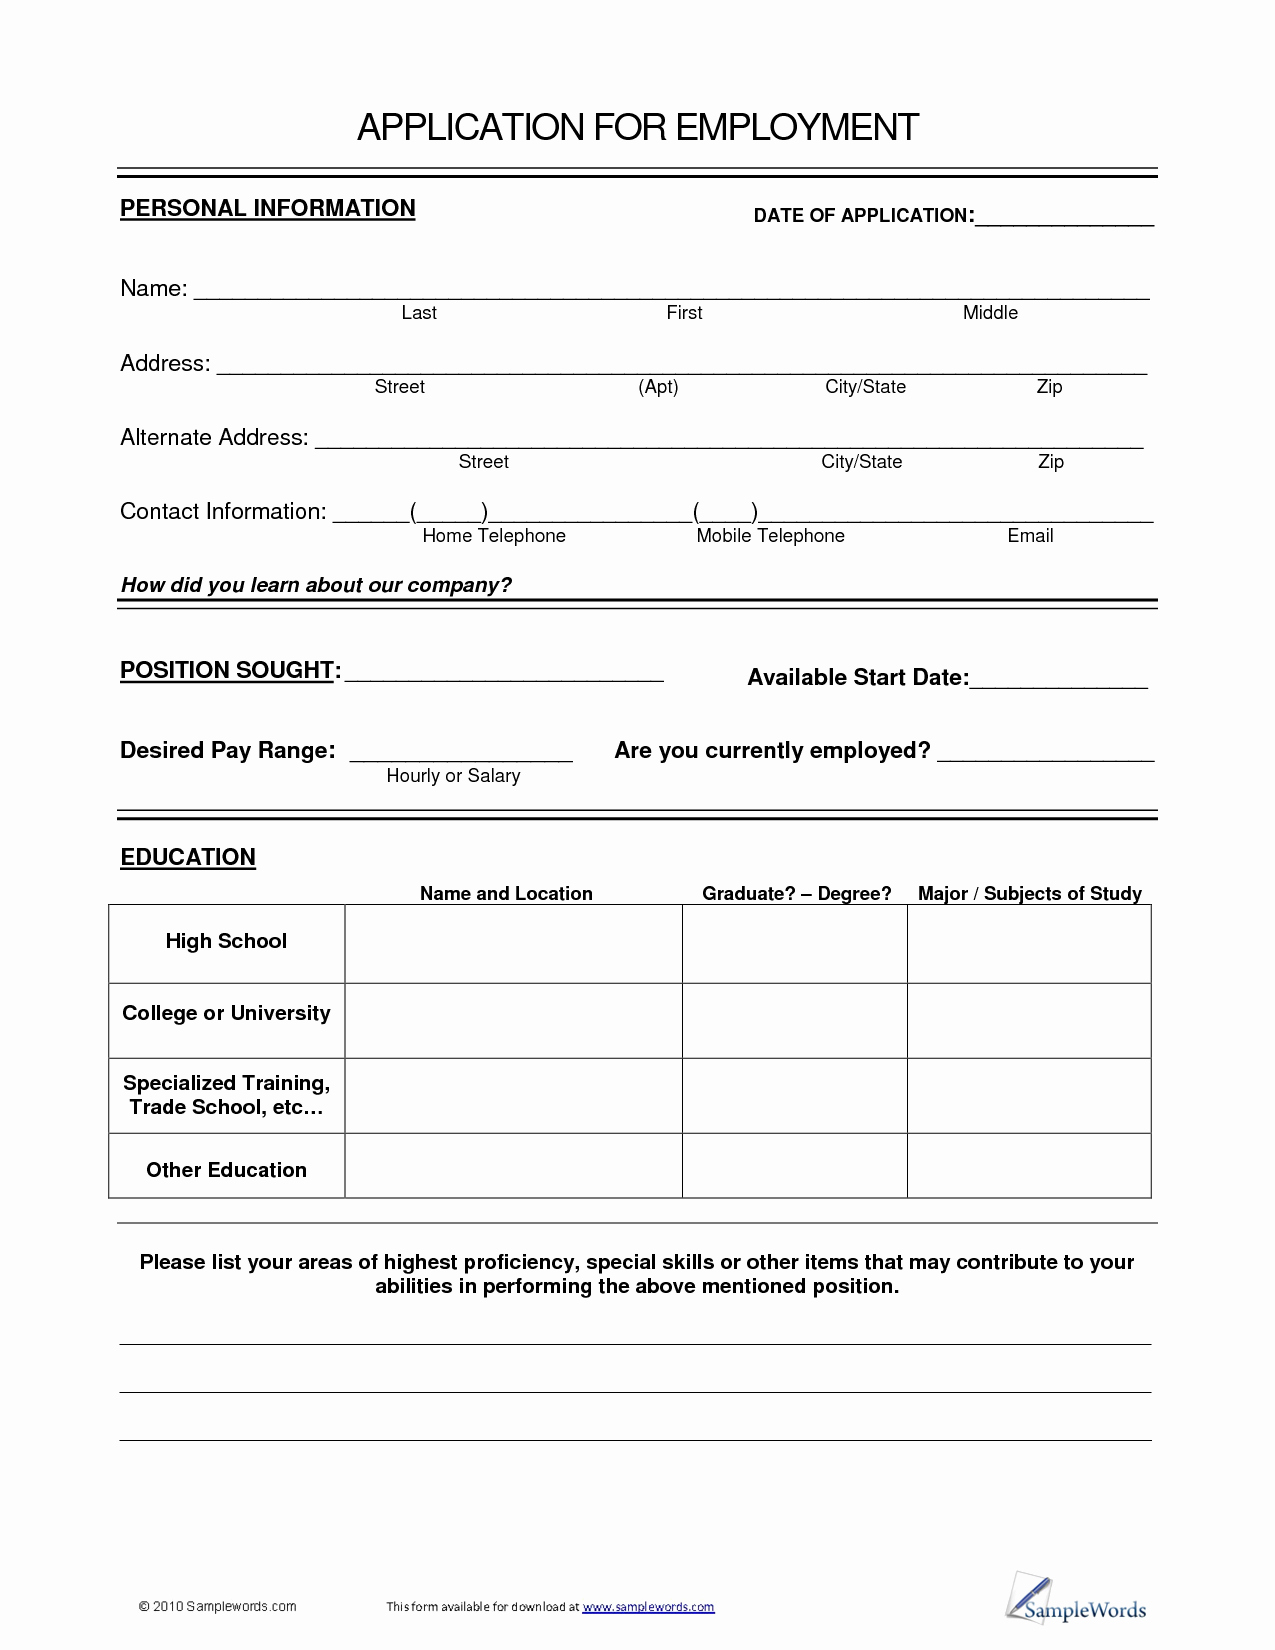 General Application for Employment Template Inspirational Best S Of General Employment Application form